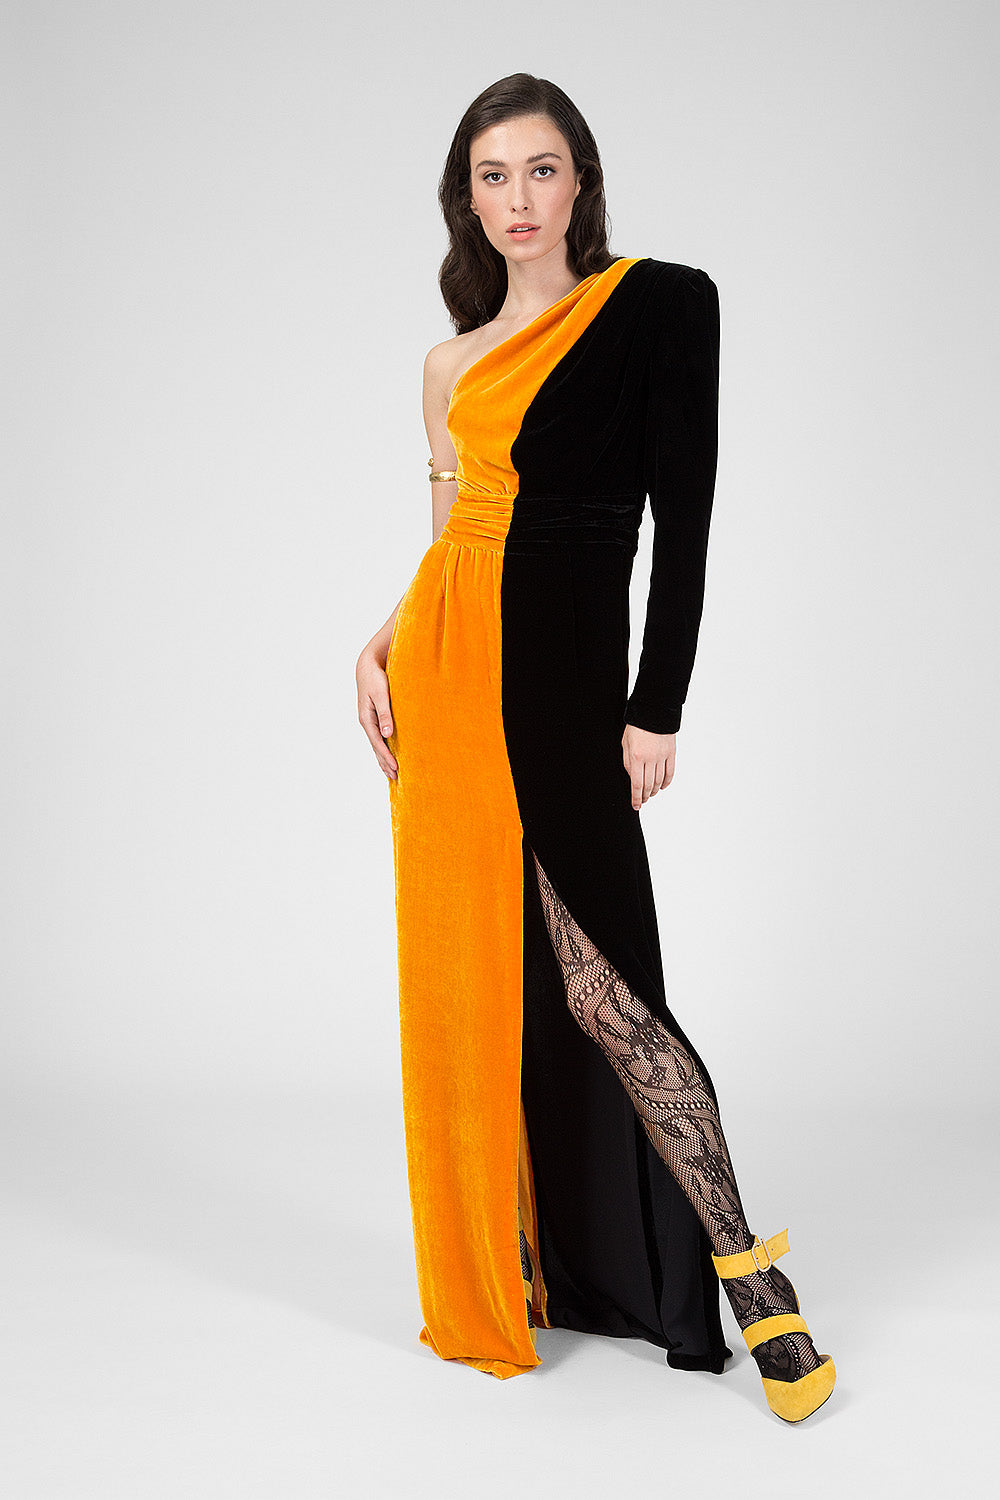 Black velvet full-length dress